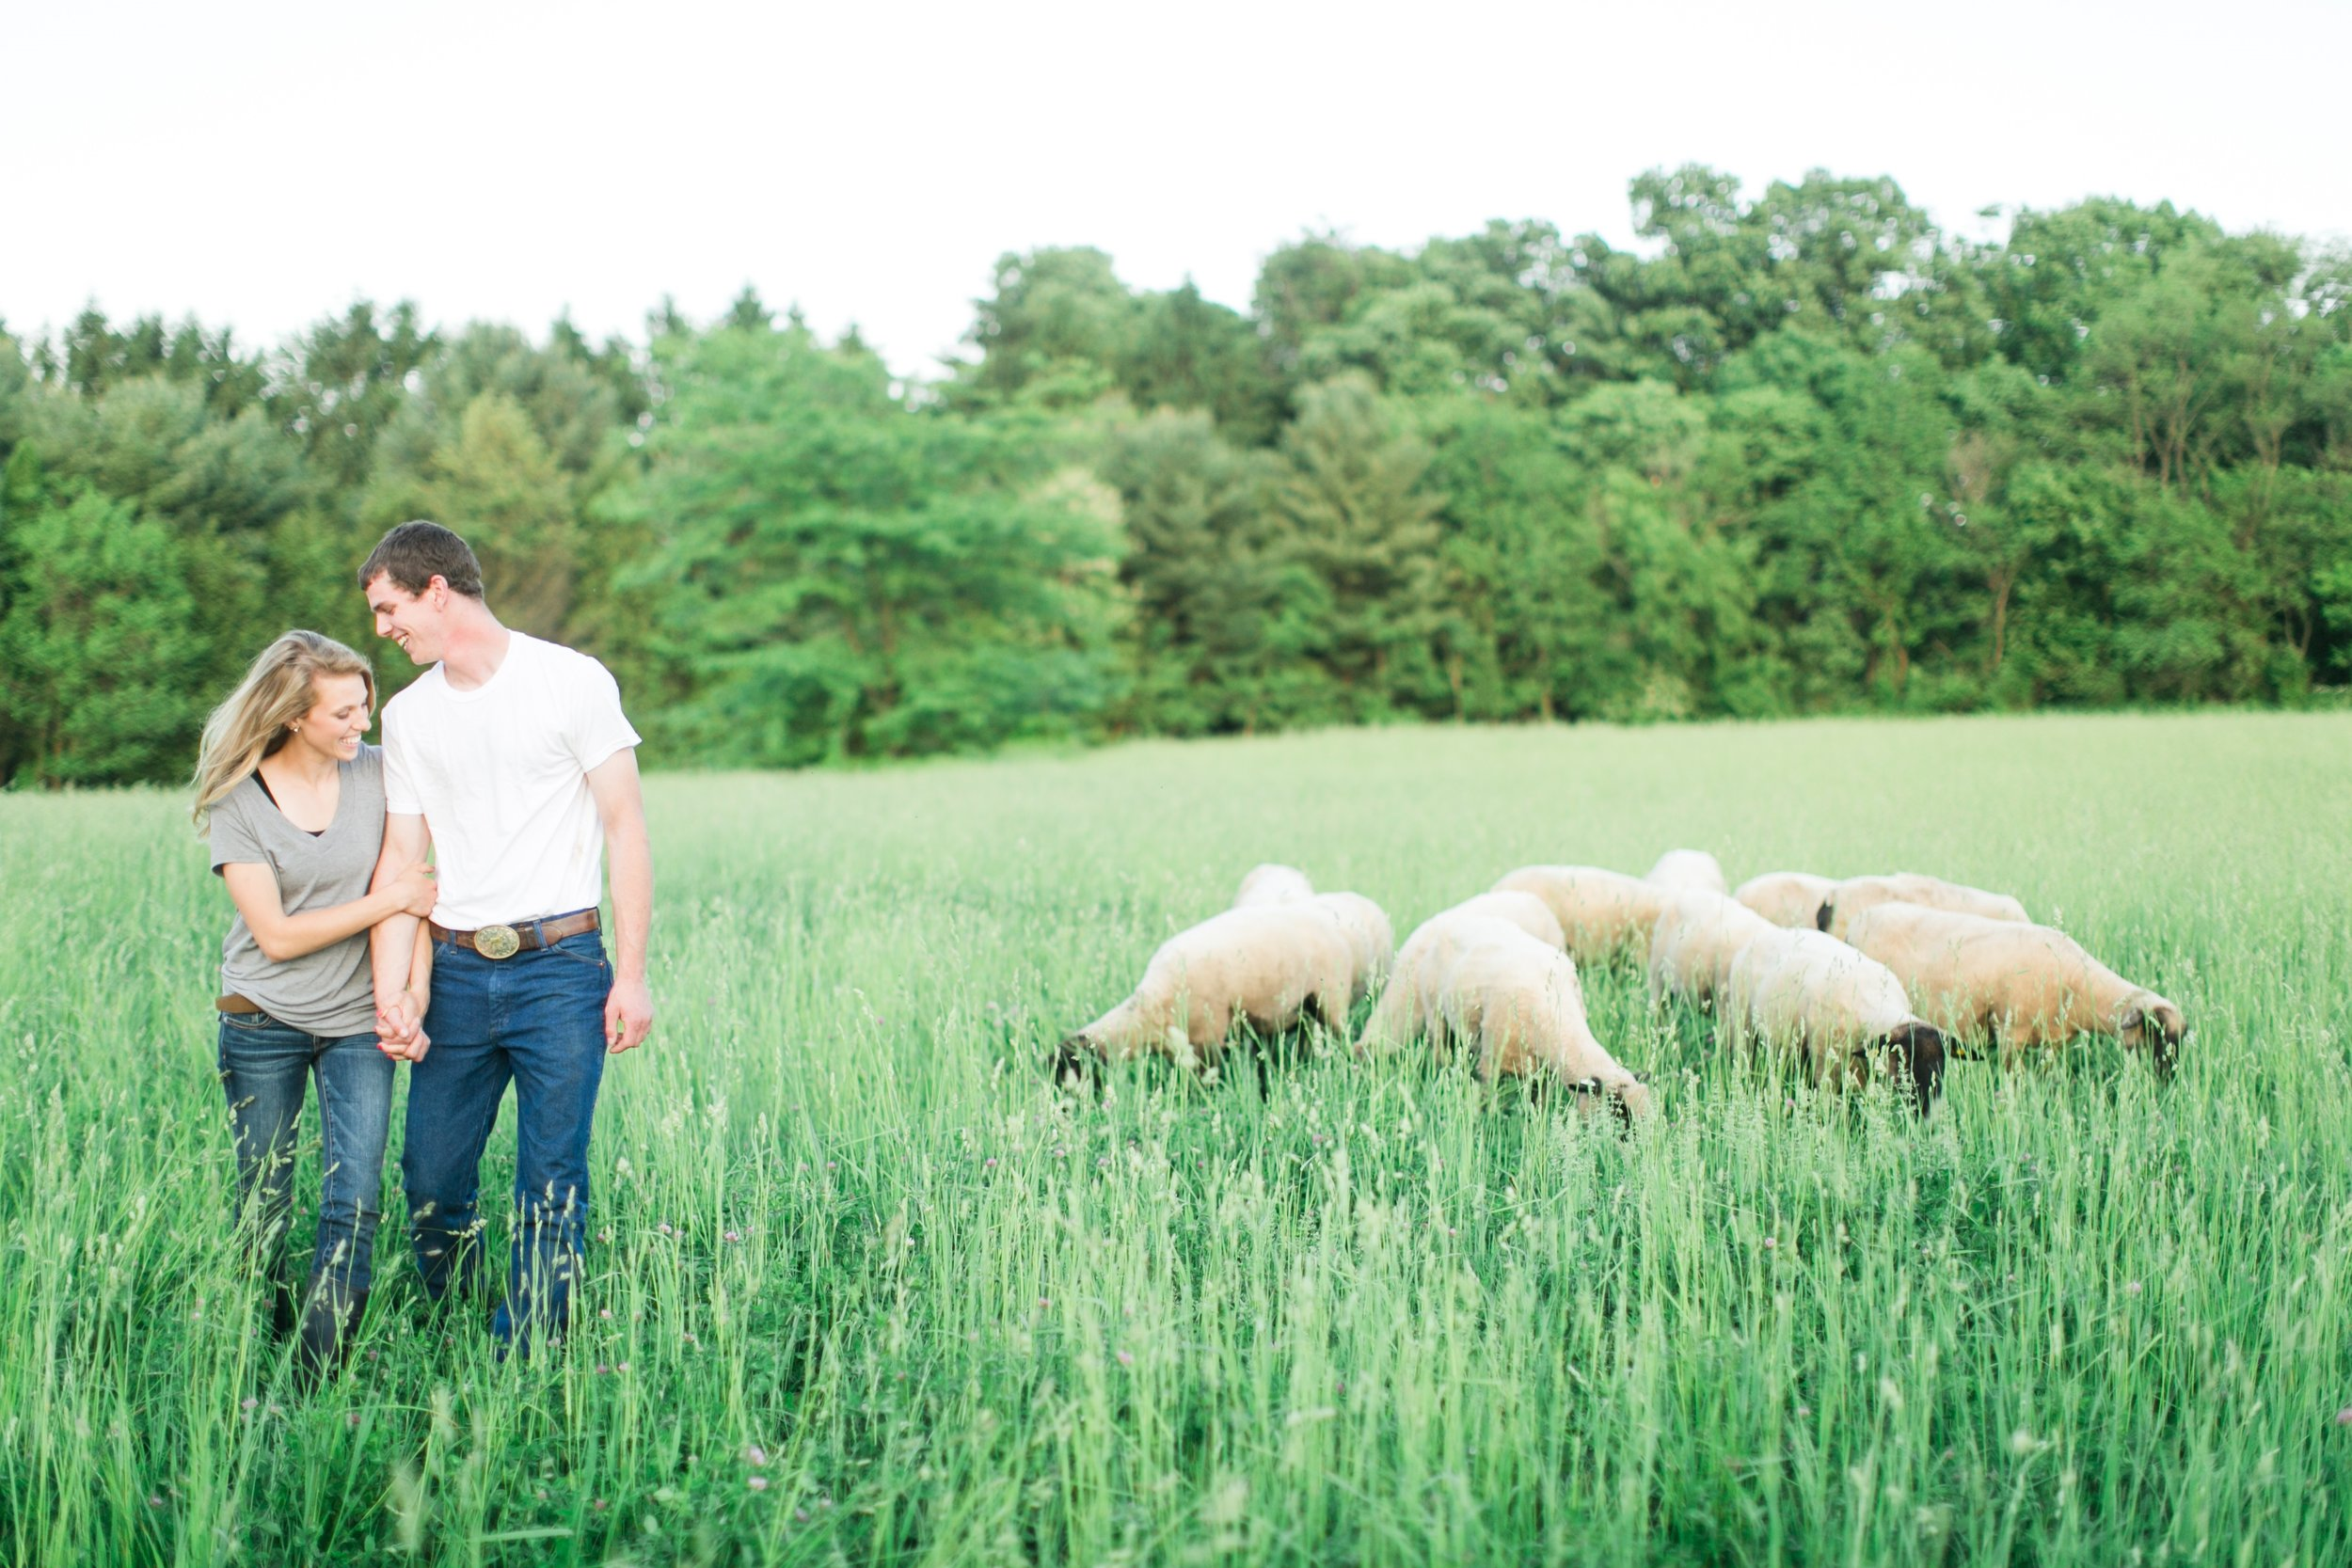 - & That's my husband Ben. Together we're just a couple of shepherds trying to raise some good ole' sheep, feed some good ole' people, and have a good ole' time while doing it. I started The Center Cut Company because I truly believe people deserve to know where their food comes from. I believe in the future of agriculture. I believe the time for young agriculturalists is now. I believe a balanced diet with good clean food can fix a lot and I believe in raising animals humanely. I know the internet is full of good information on anything and everything you can possibly imagine, but I want this site to be a place you know you can go for the facts. When you're wondering about the rumors, feel free to always ask questions and we will be happy to share our true and real experiences and knowledge with you.I am confident that you will get food you feel confident about, information you can trust, and a friend you can always go to. Thank you for visiting our page, and I hope you too can taste the difference.